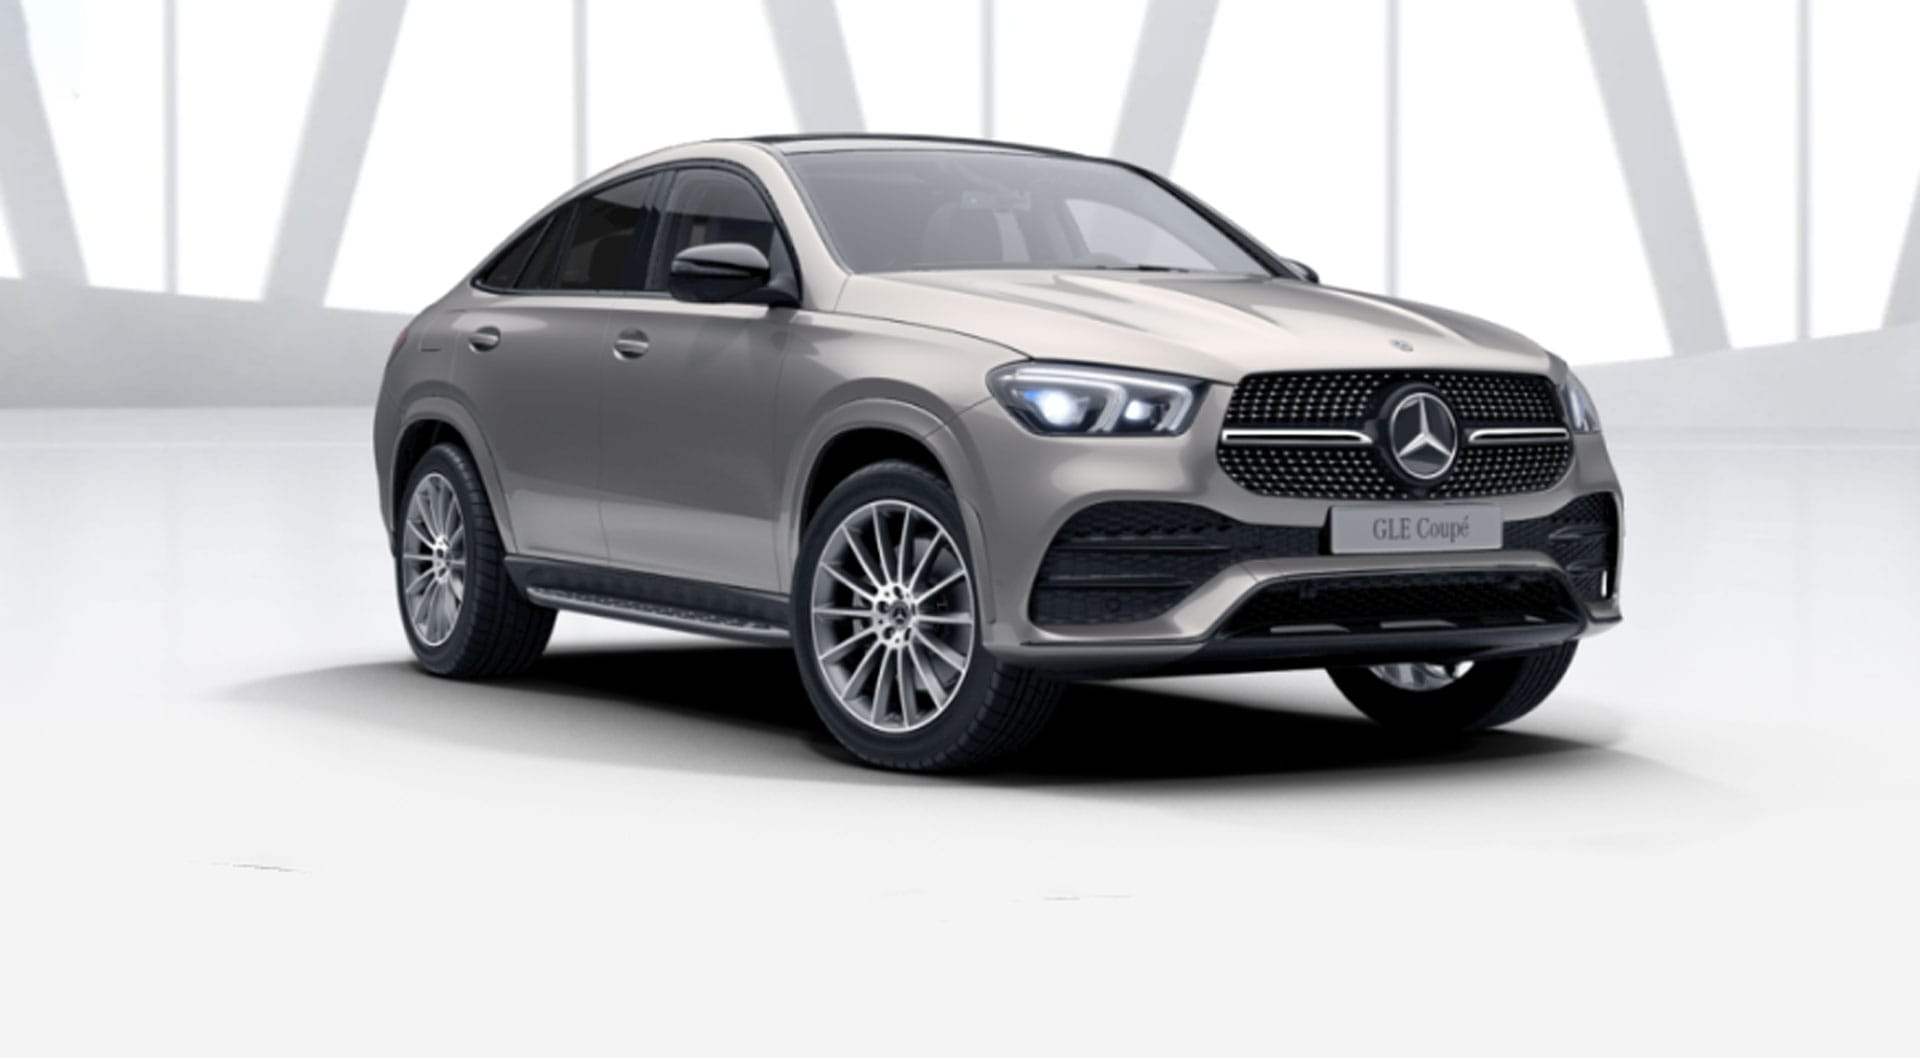 Mercedes-Benz GLE Coupe 0152601270